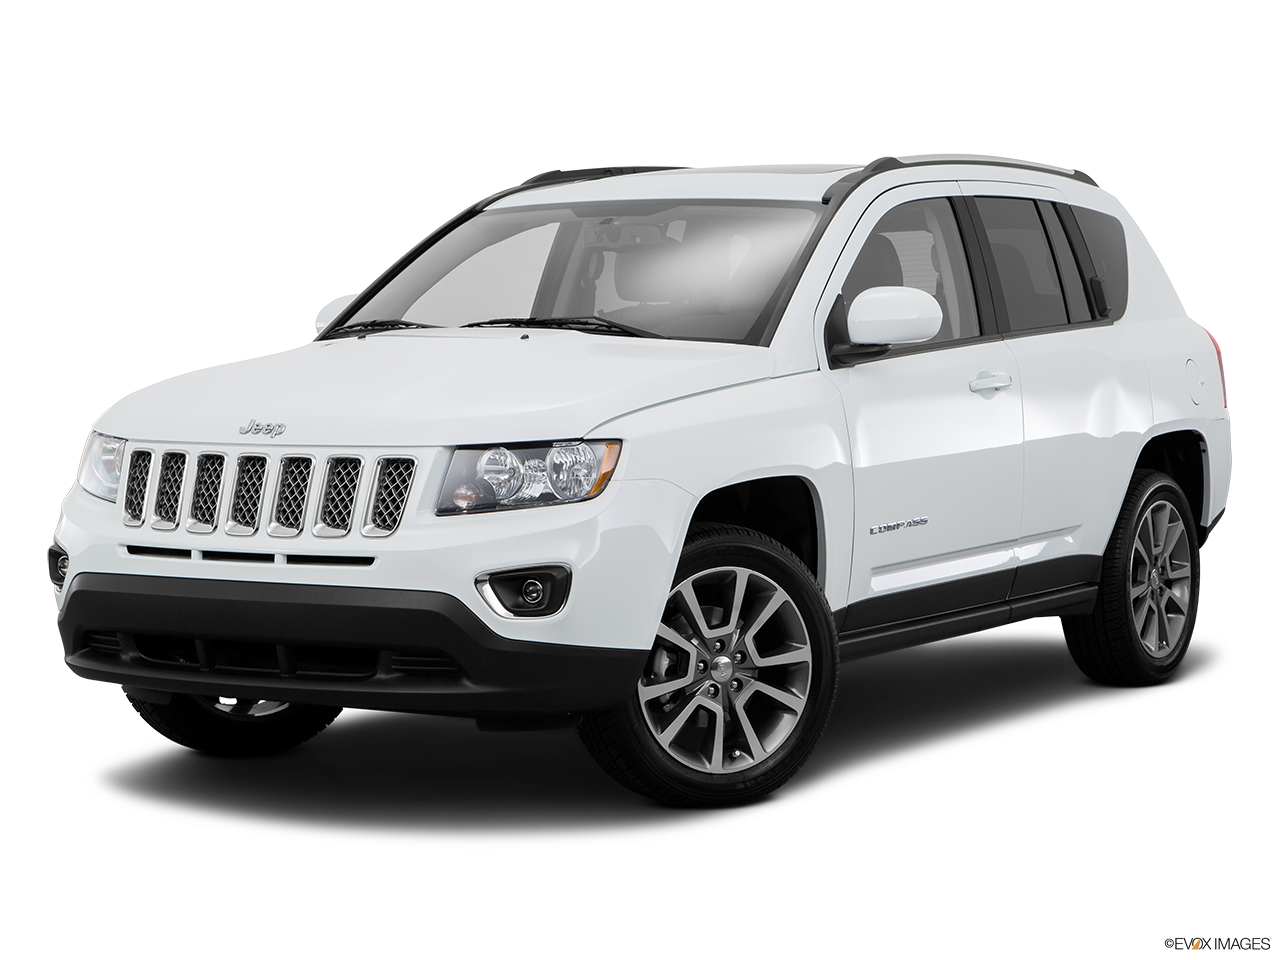 Test Drive A 2016 Jeep Compass at Premier Jeep in Tracy